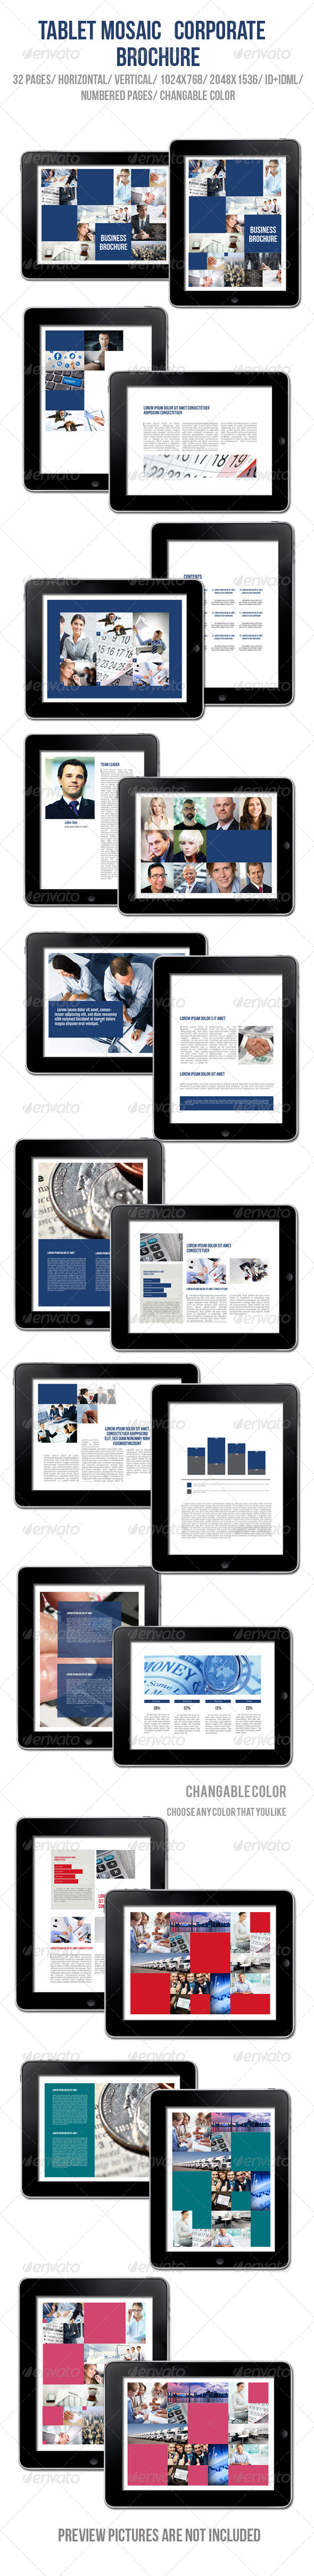 GraphicRiver Tablet Mosaic Corporate Brochure 5754684